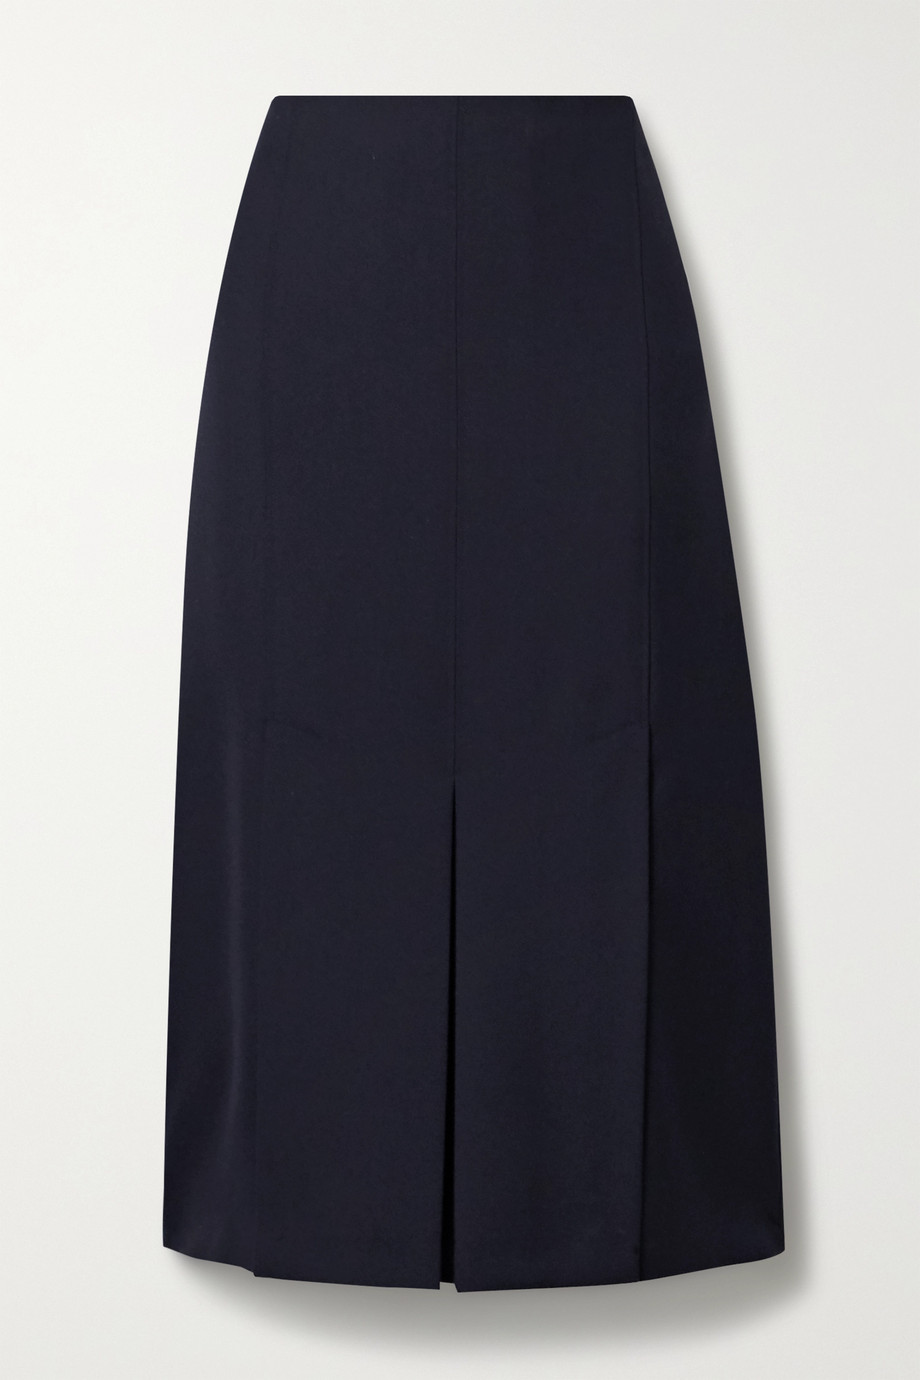 Jason Wu Pleated twill midi skirt